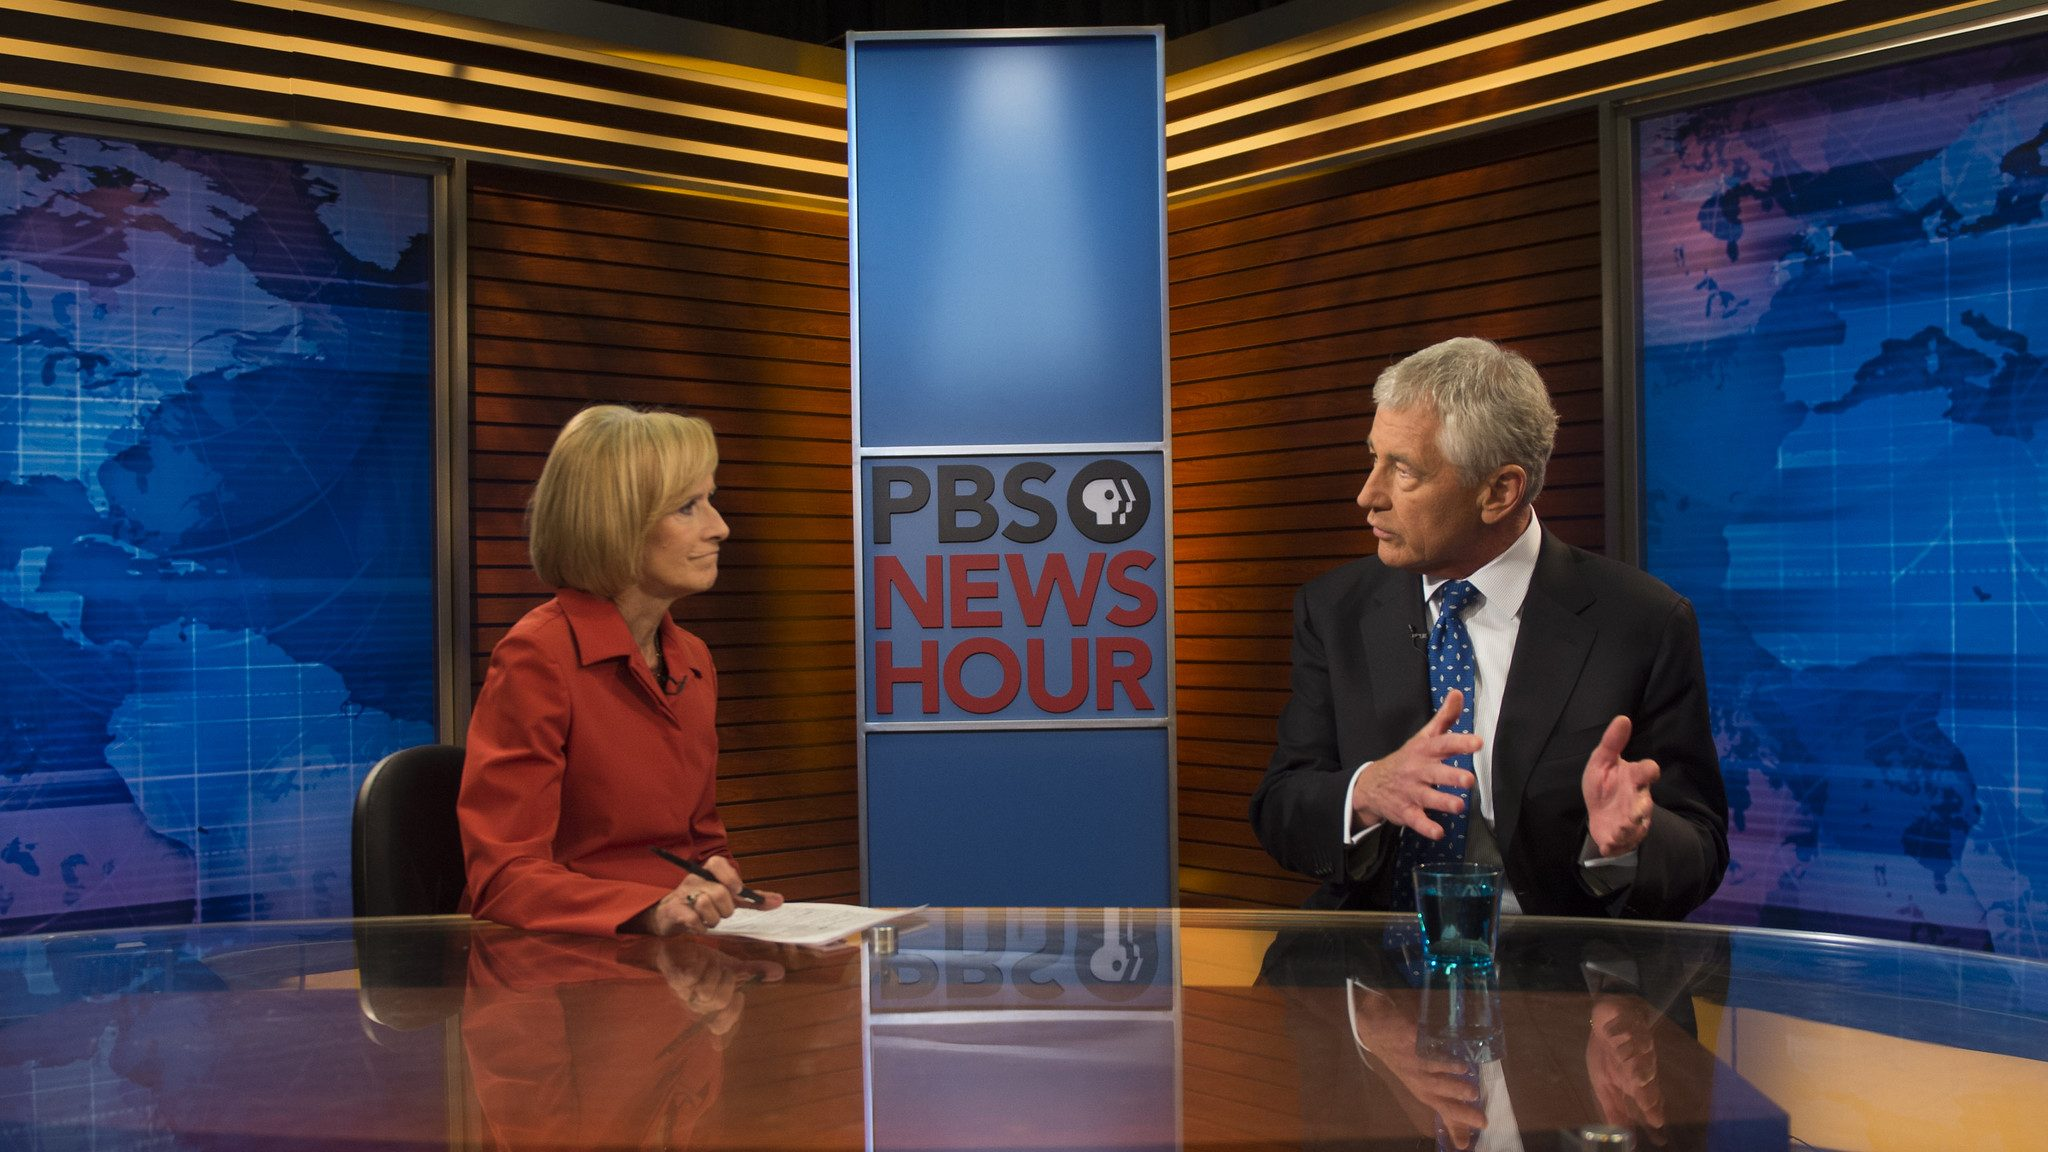 PBS News Hour and Chuck Hagel